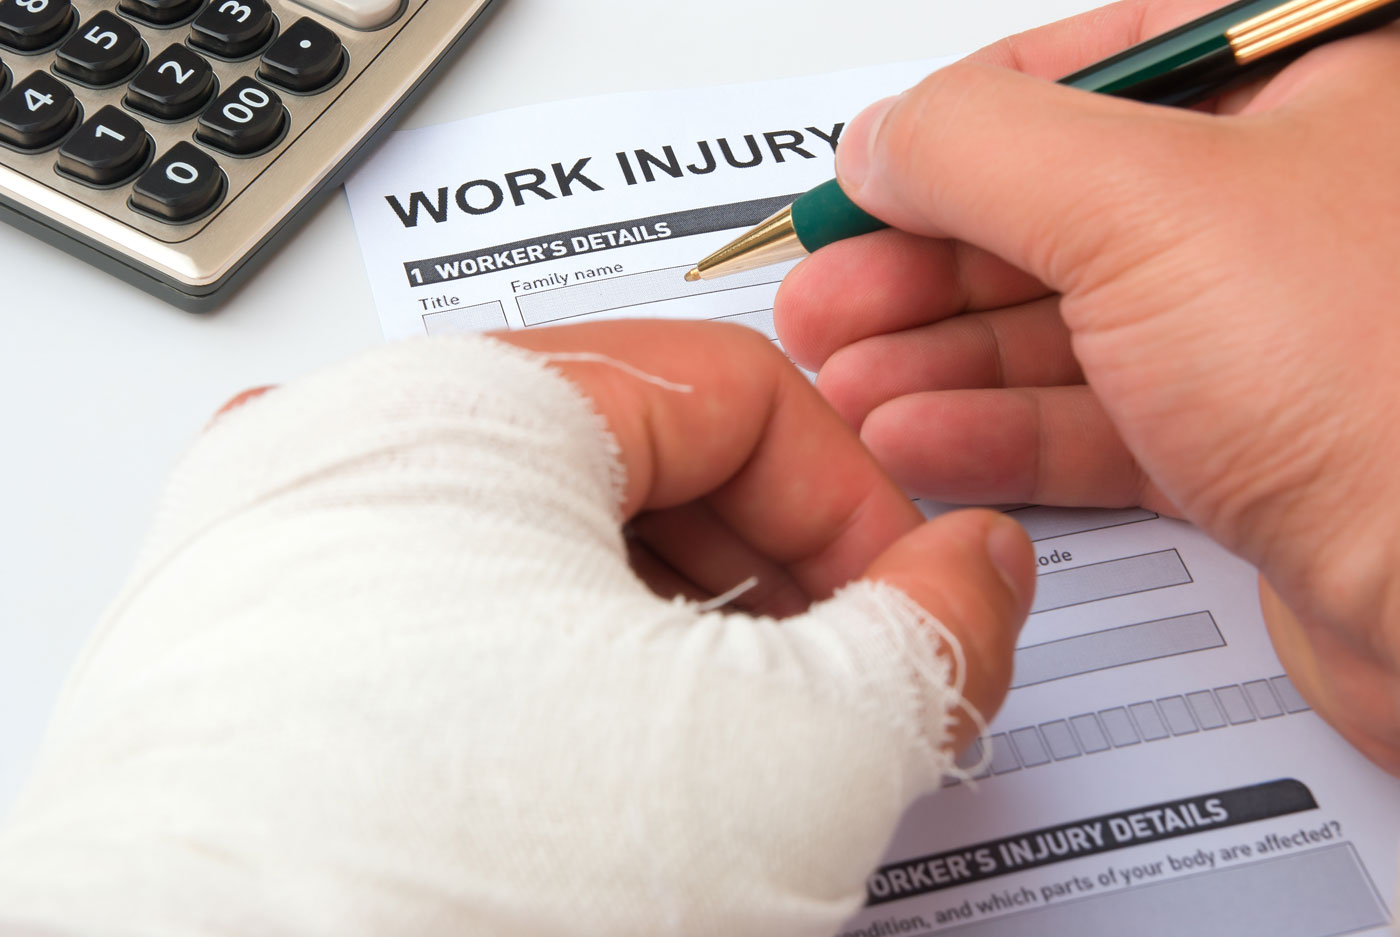 Hurt on the job? What are your next steps?